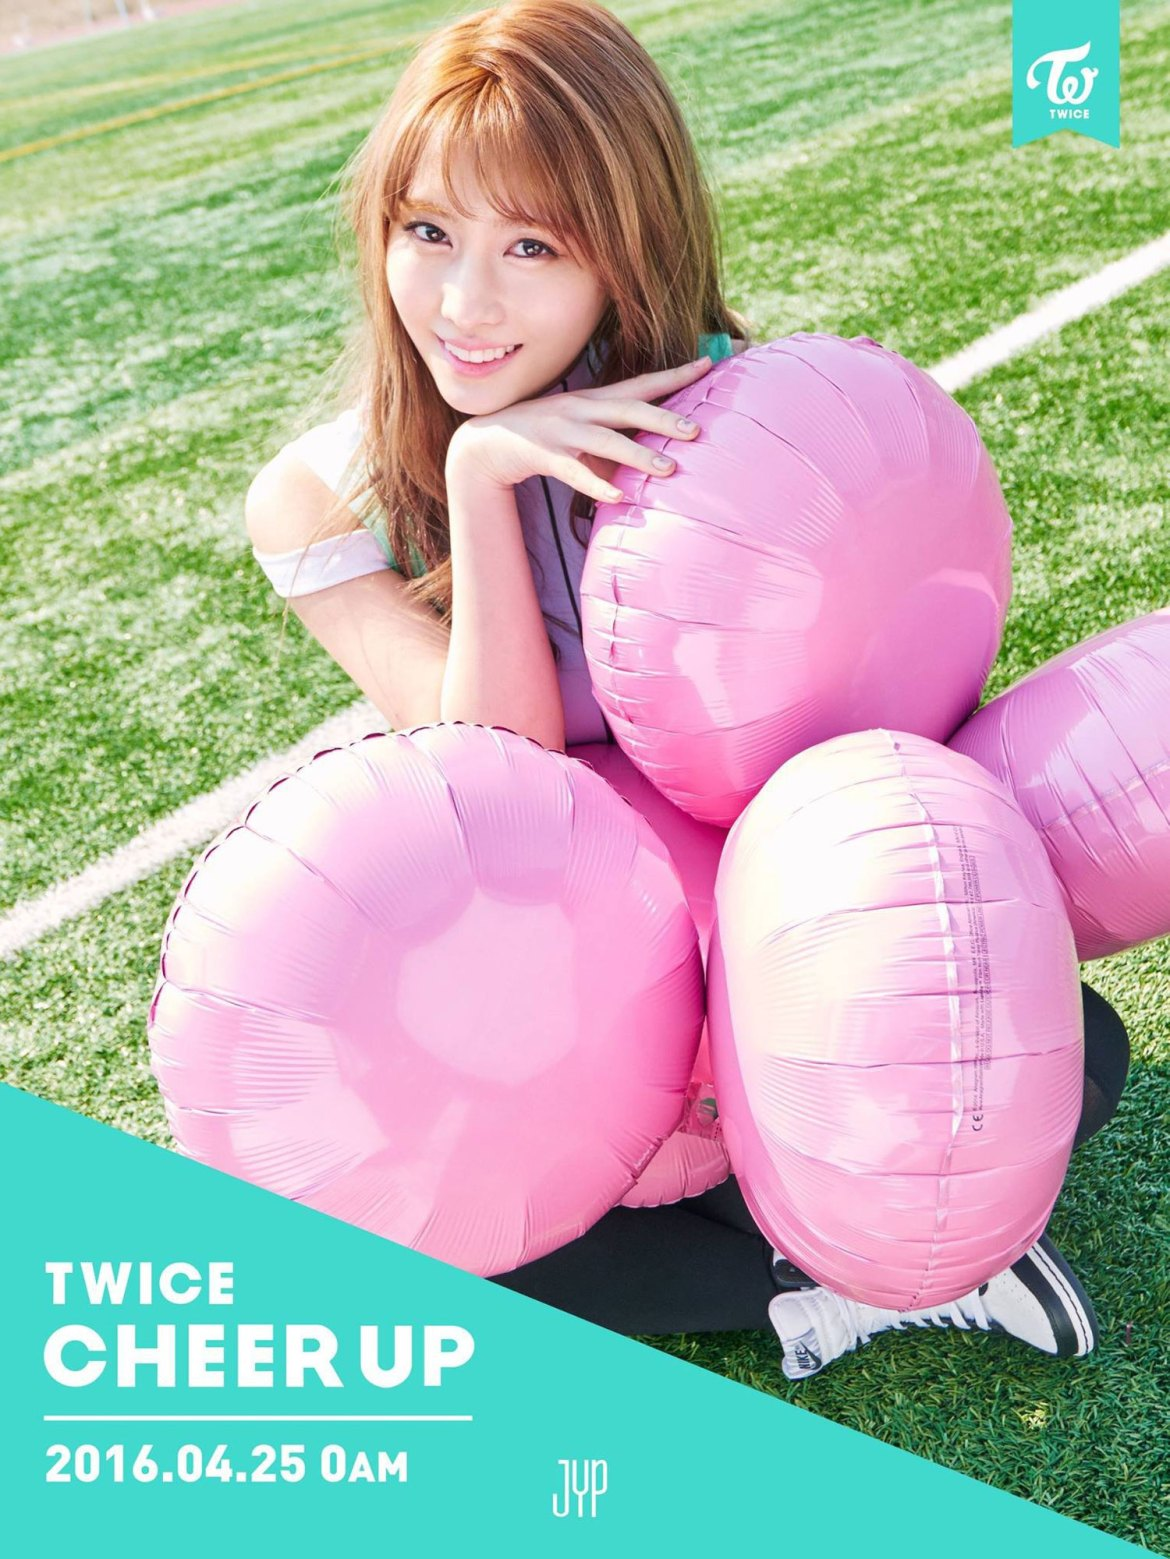 TWICE Momo Cheer Up album concept photo